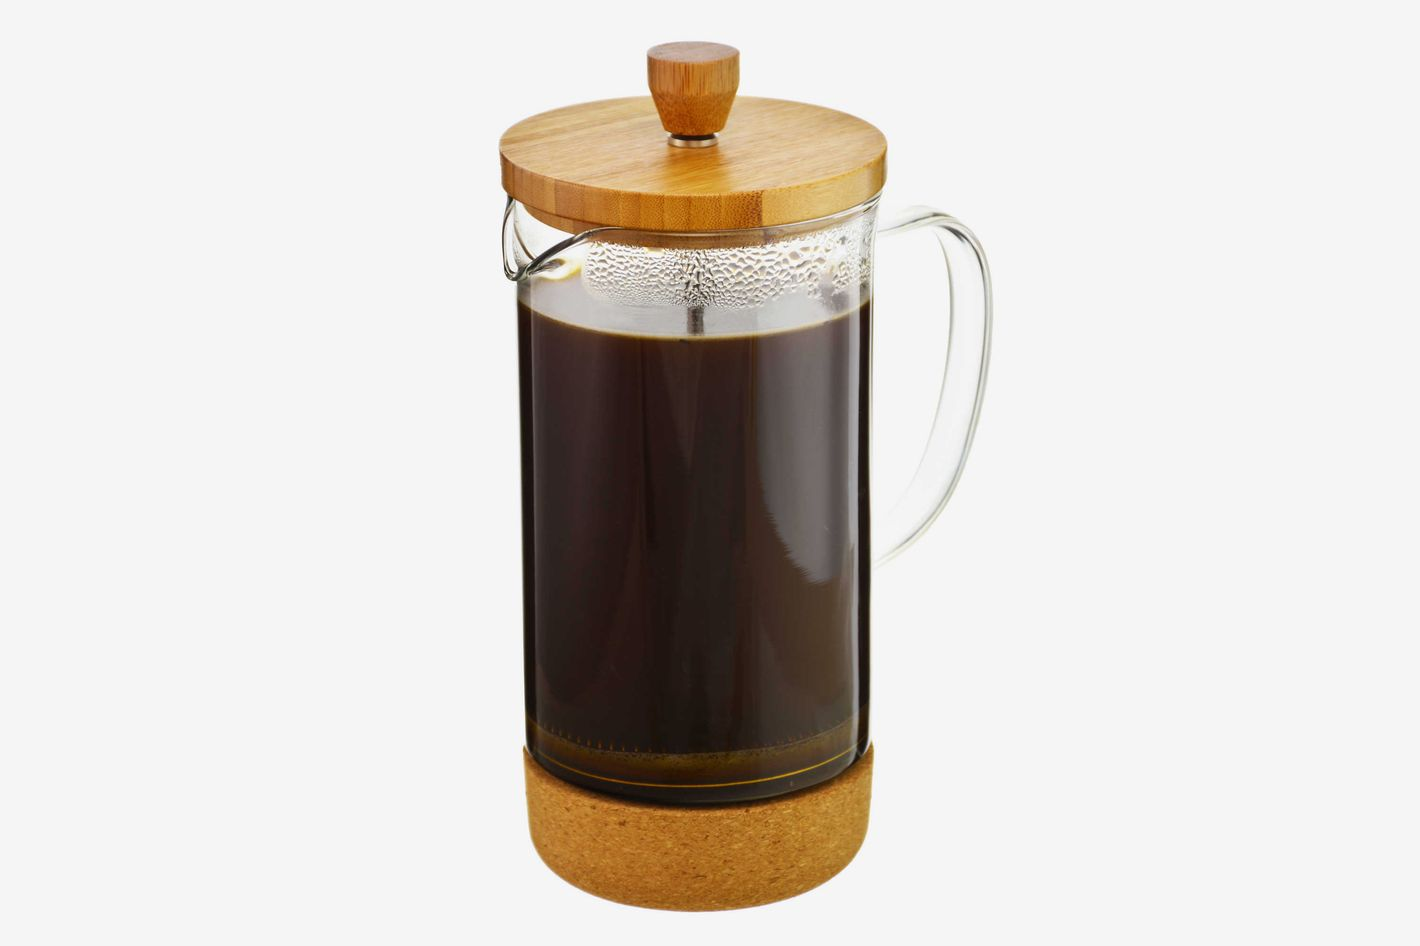 Grosche Melbourne 8-Cup Bamboo and Cork French Press